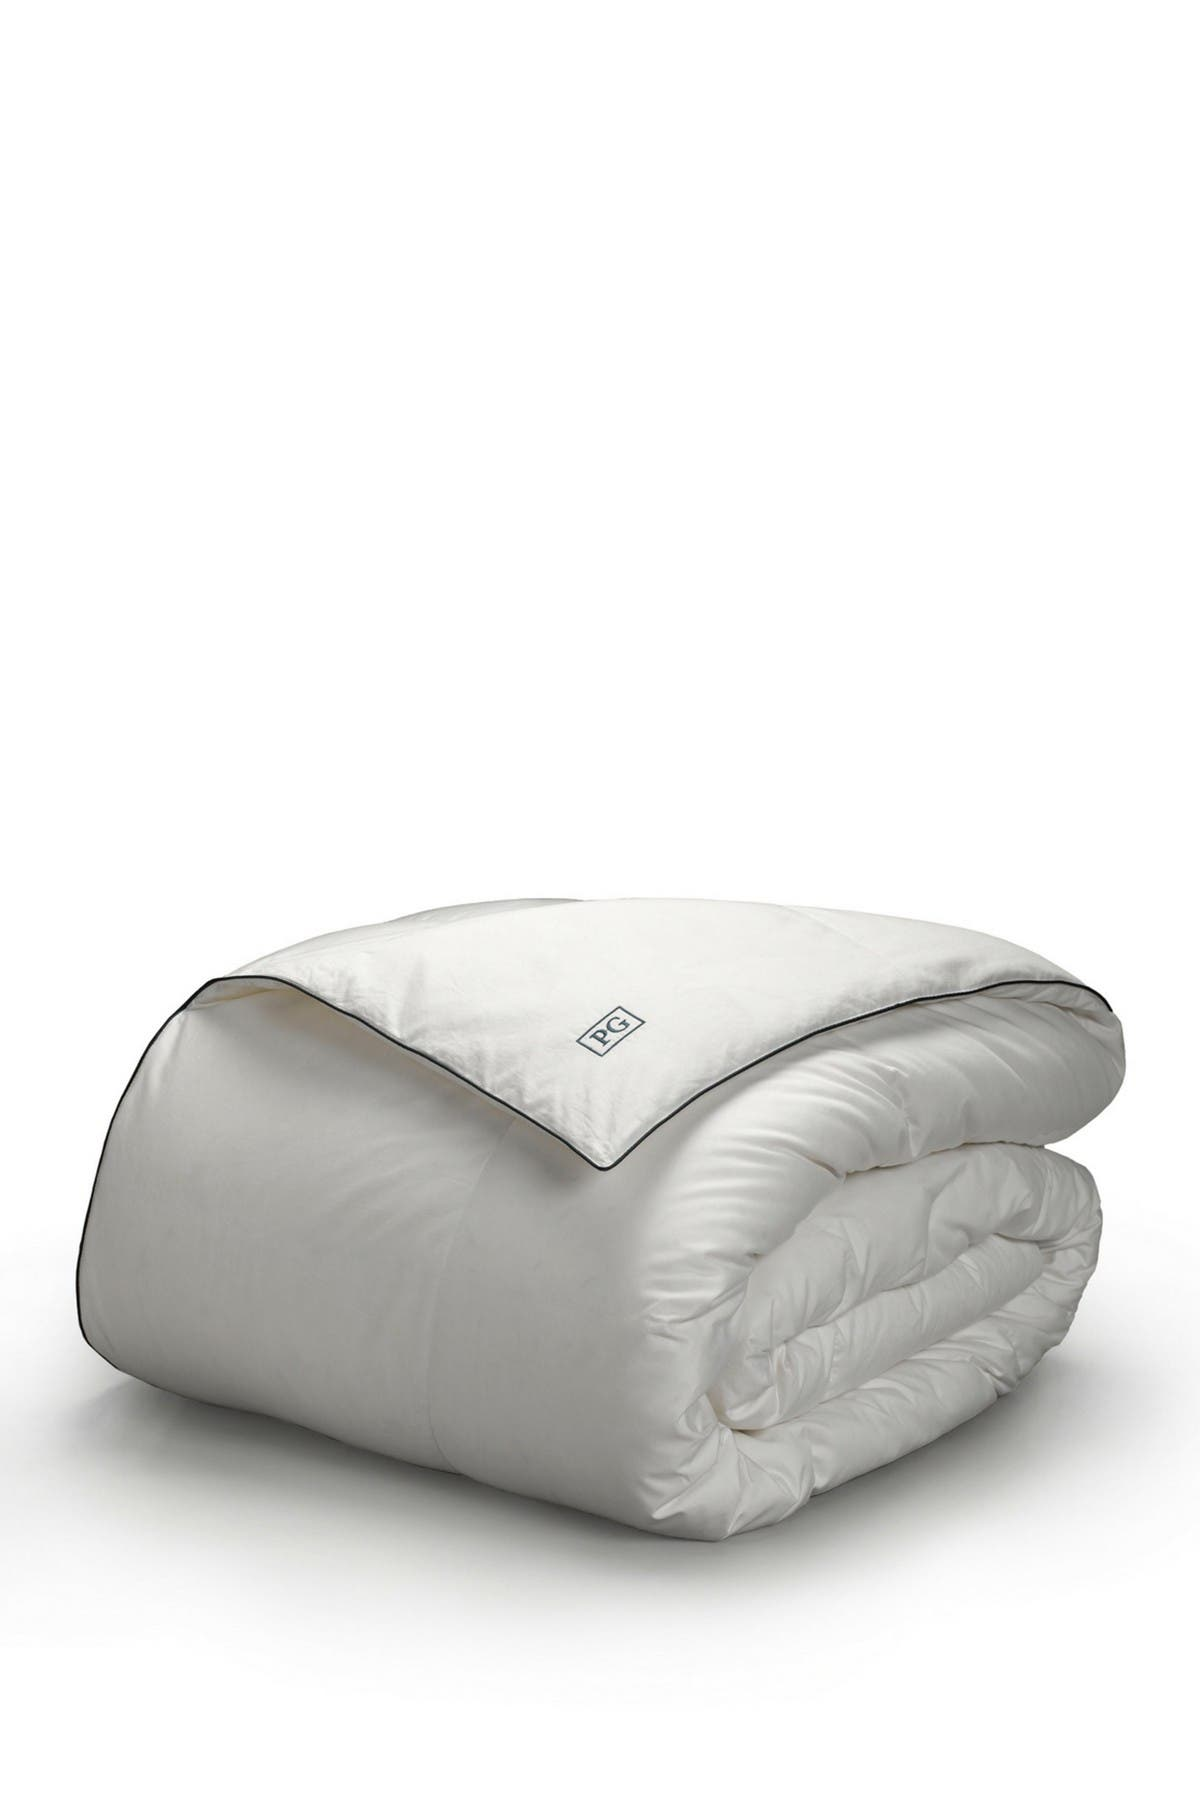 Image of Pillow Guy White Down Comforter Certified RDS - Full/Queen Size